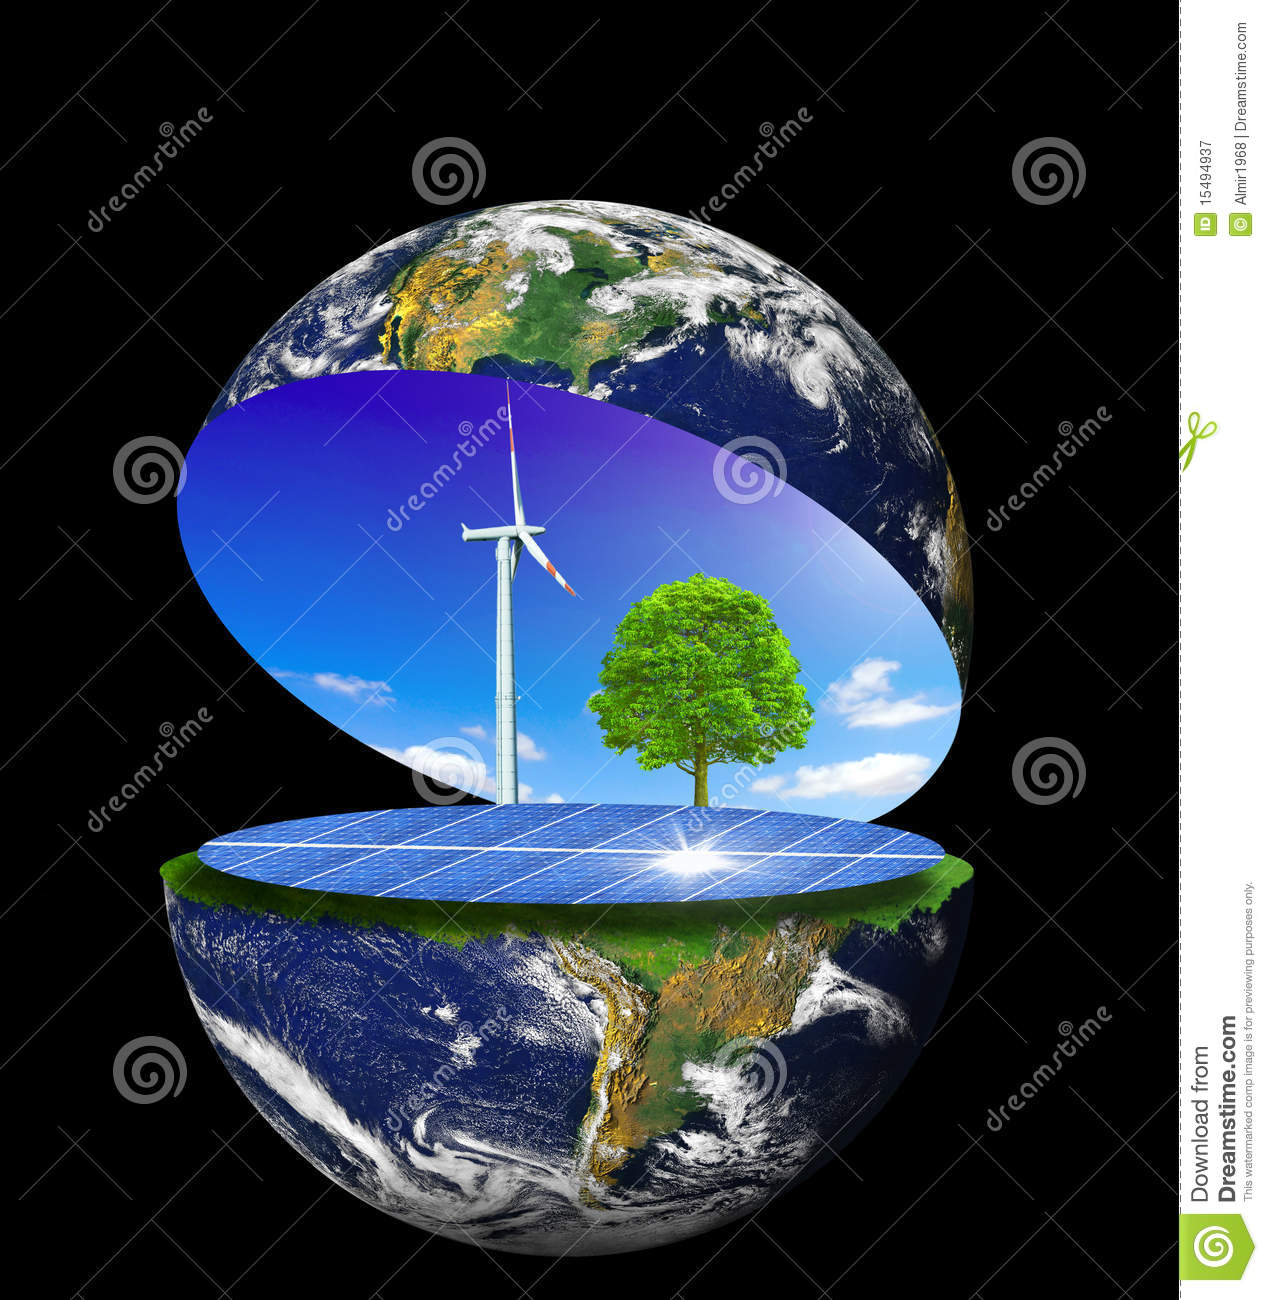 Royalty Free Stock Photography Clean Earth Image15494937